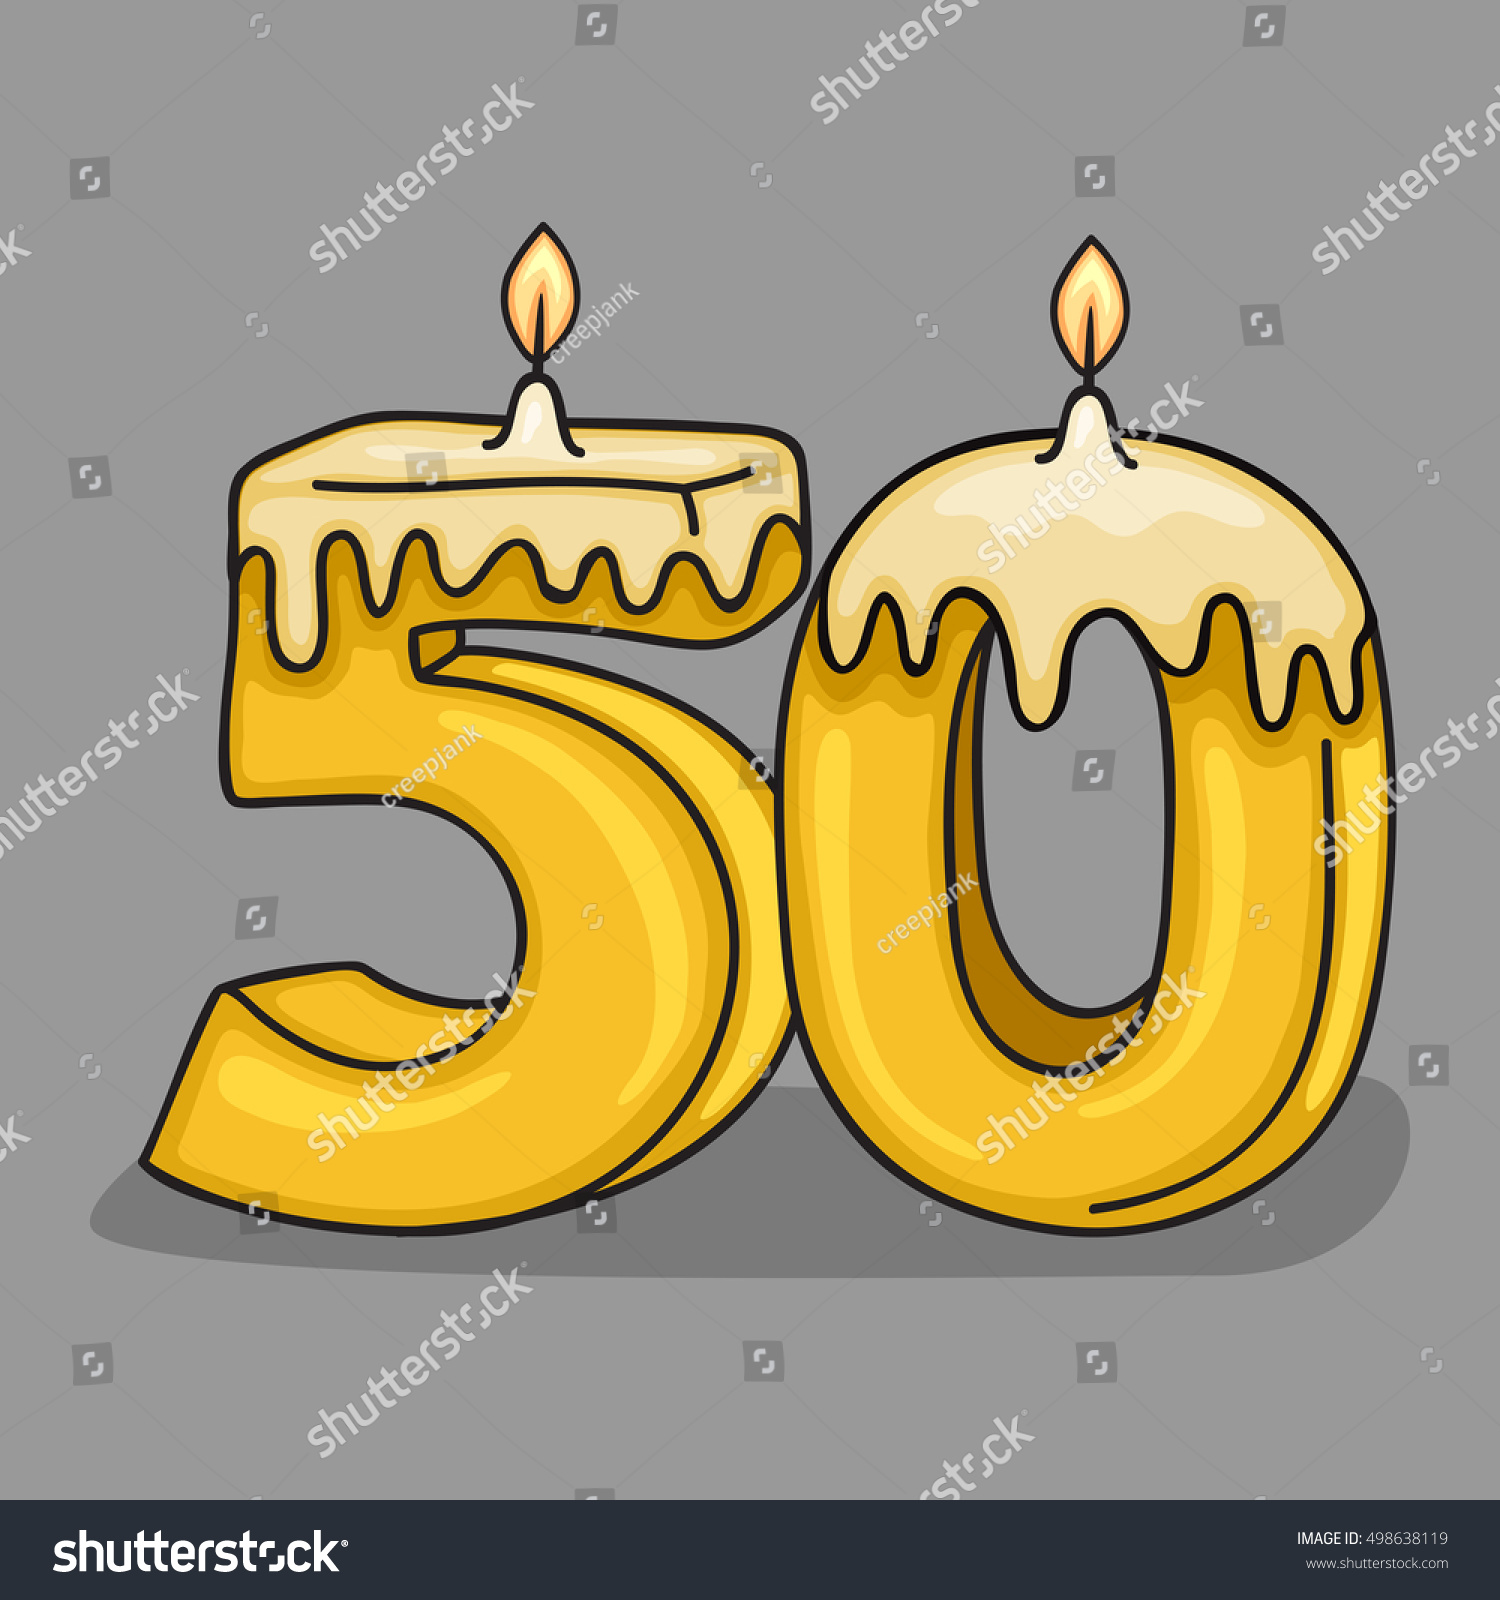 50th Birthday Candle Number Vector Design Template Elements For Your Celebration